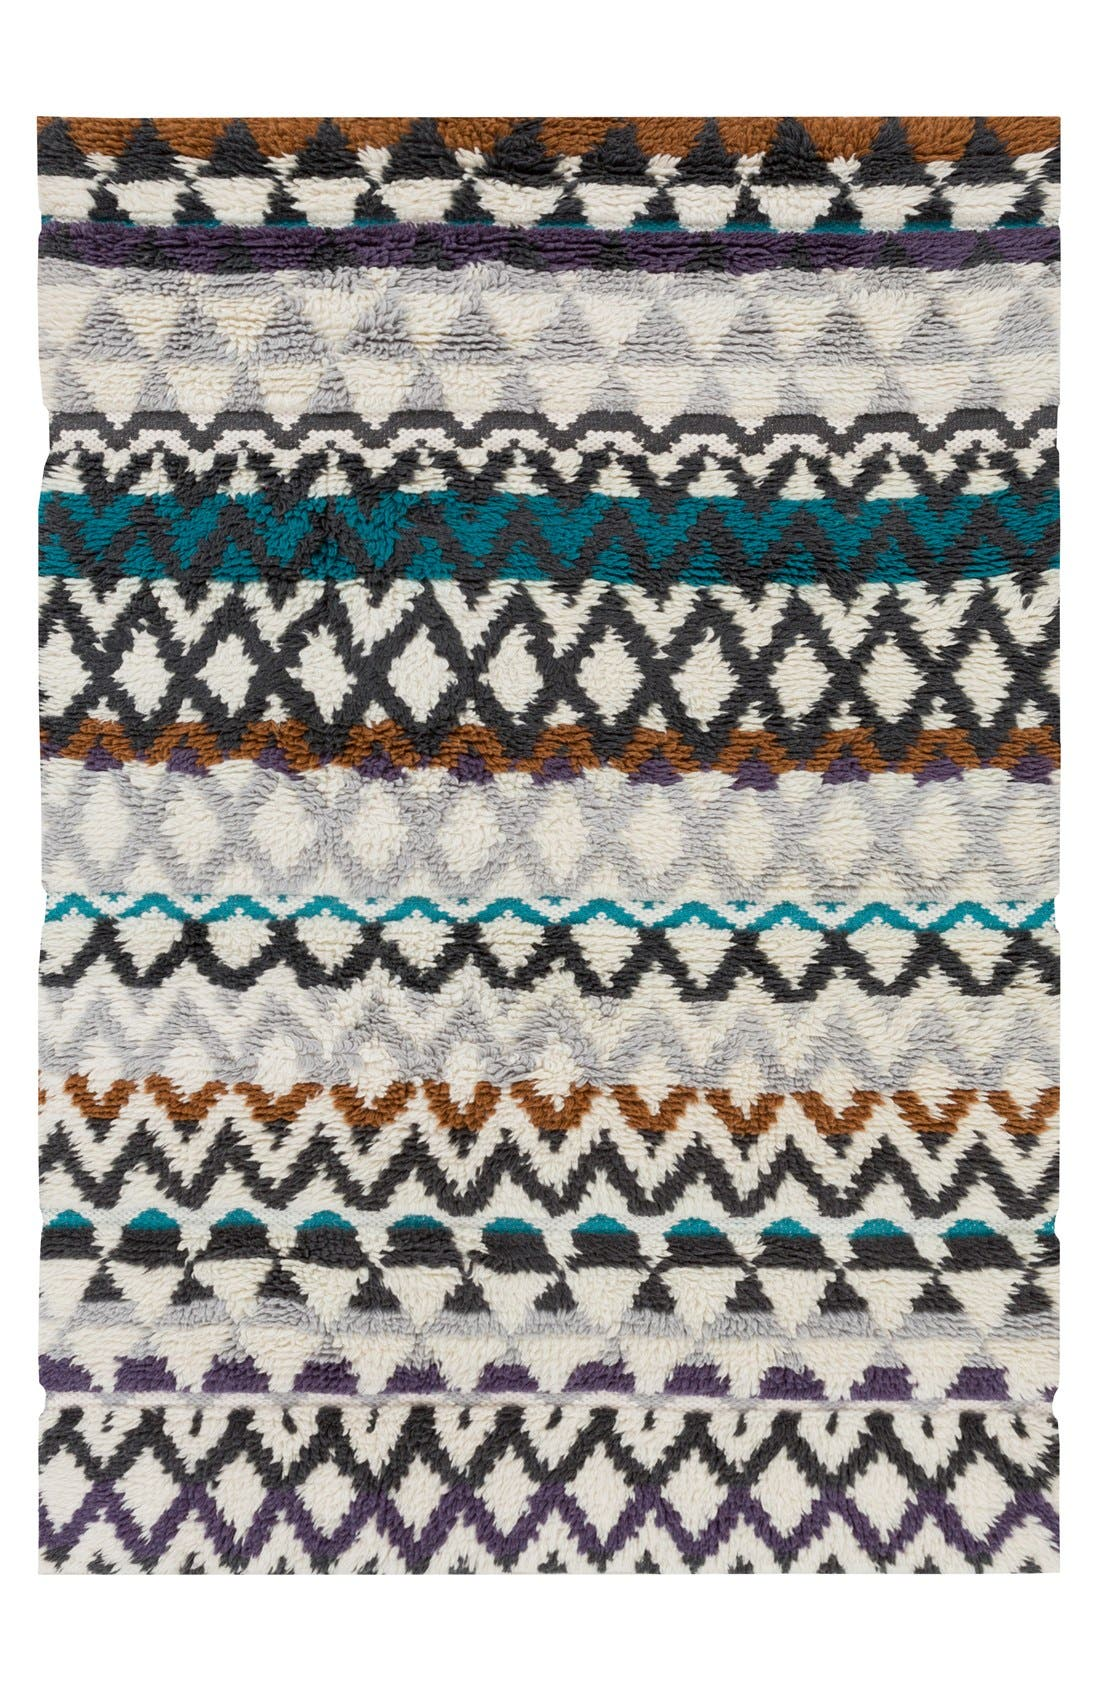 Surya Home 'Atticus' Hand Woven Wool Rug